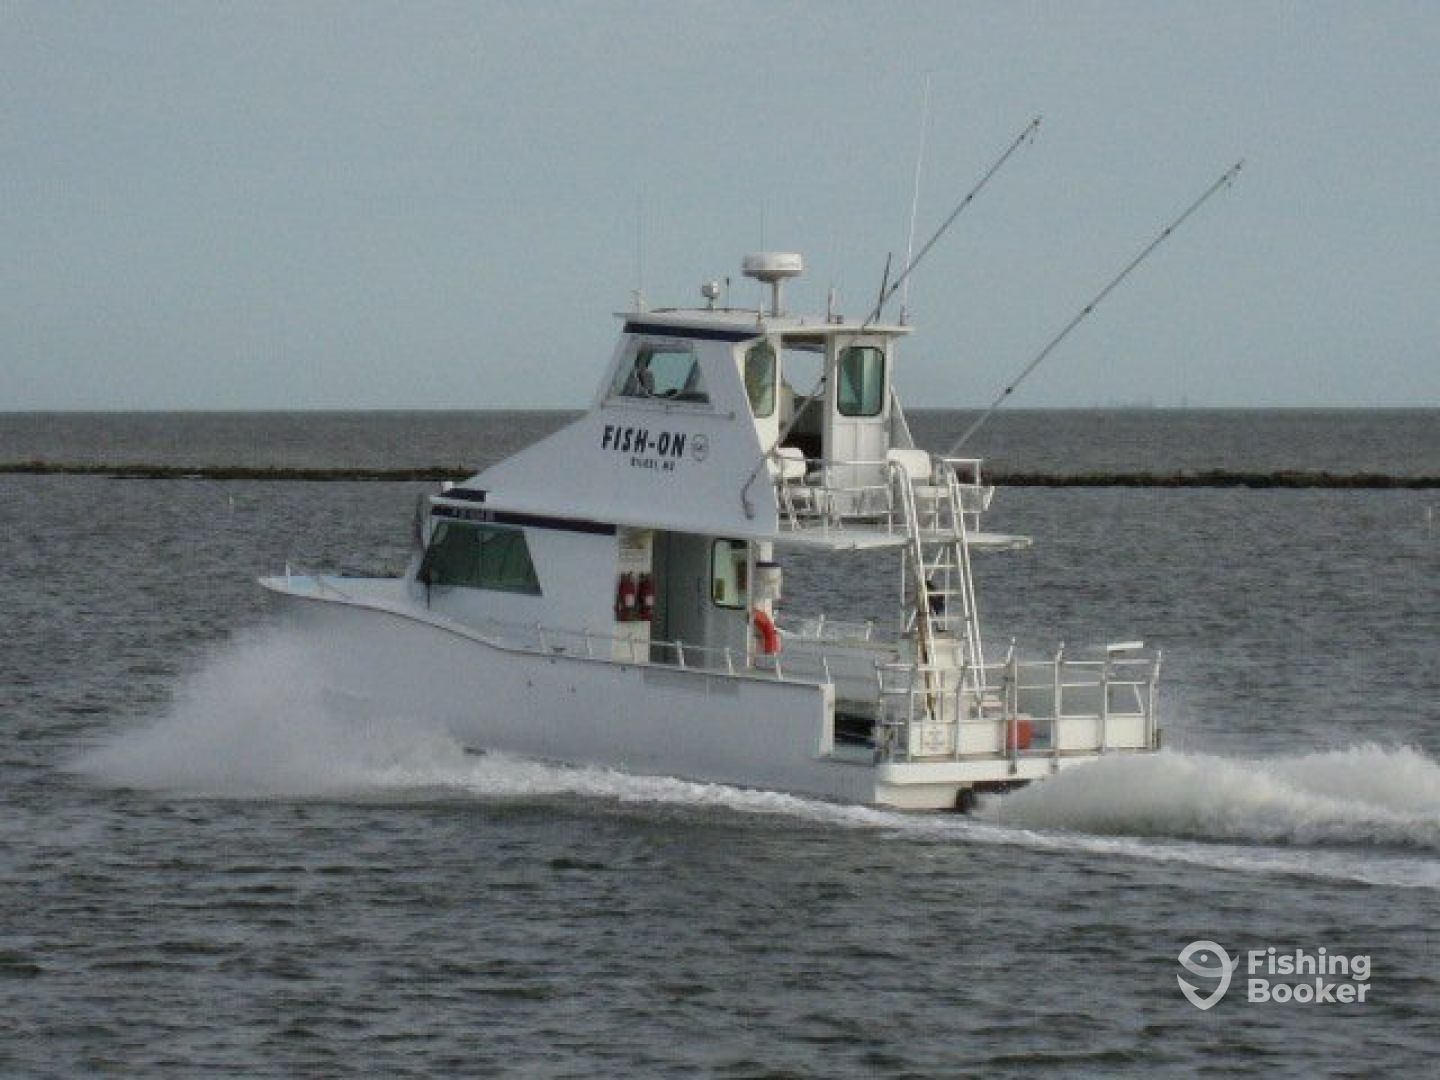 Fish on charters biloxi ms fishingbooker for Mississippi fishing charters